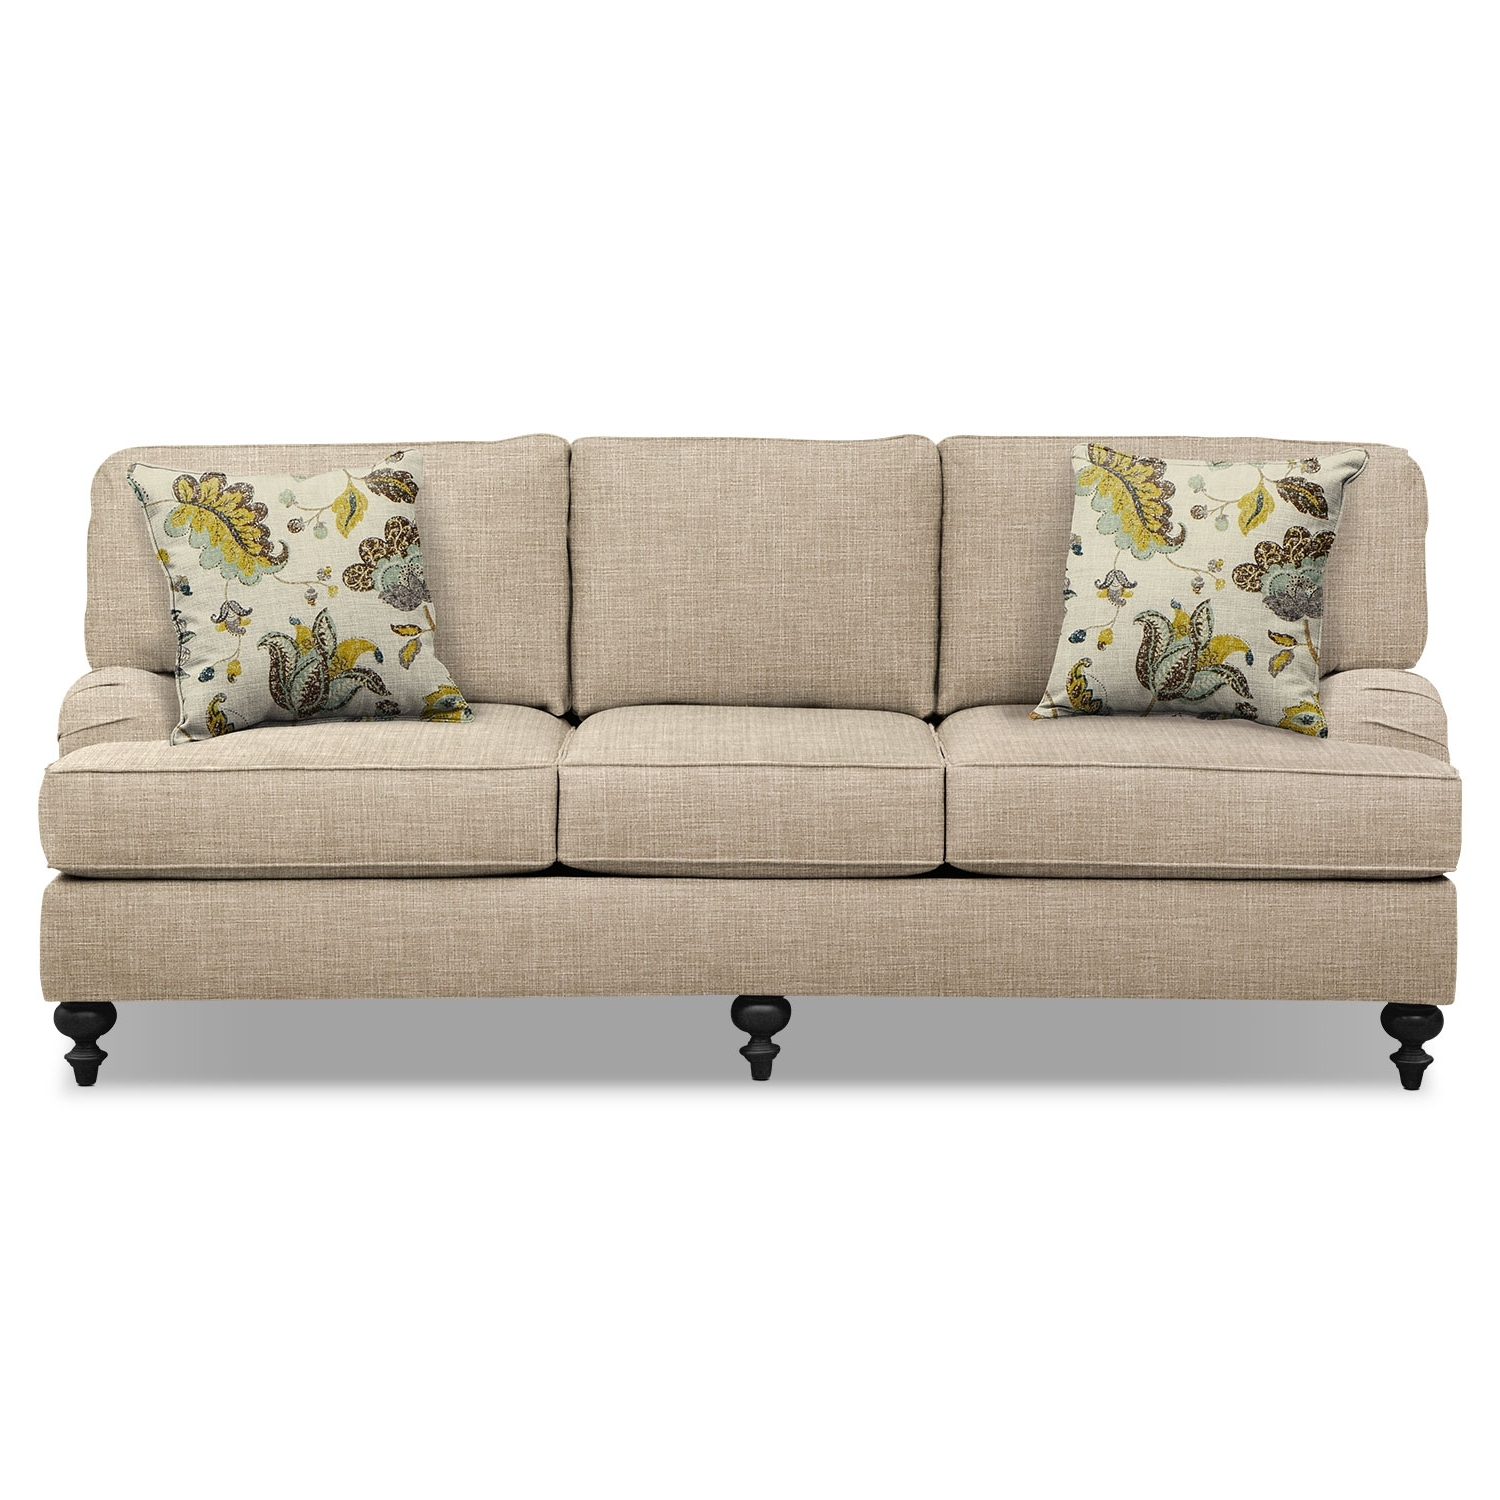 "Avery Taupe 86"" Sofa (View 2 of 20)"